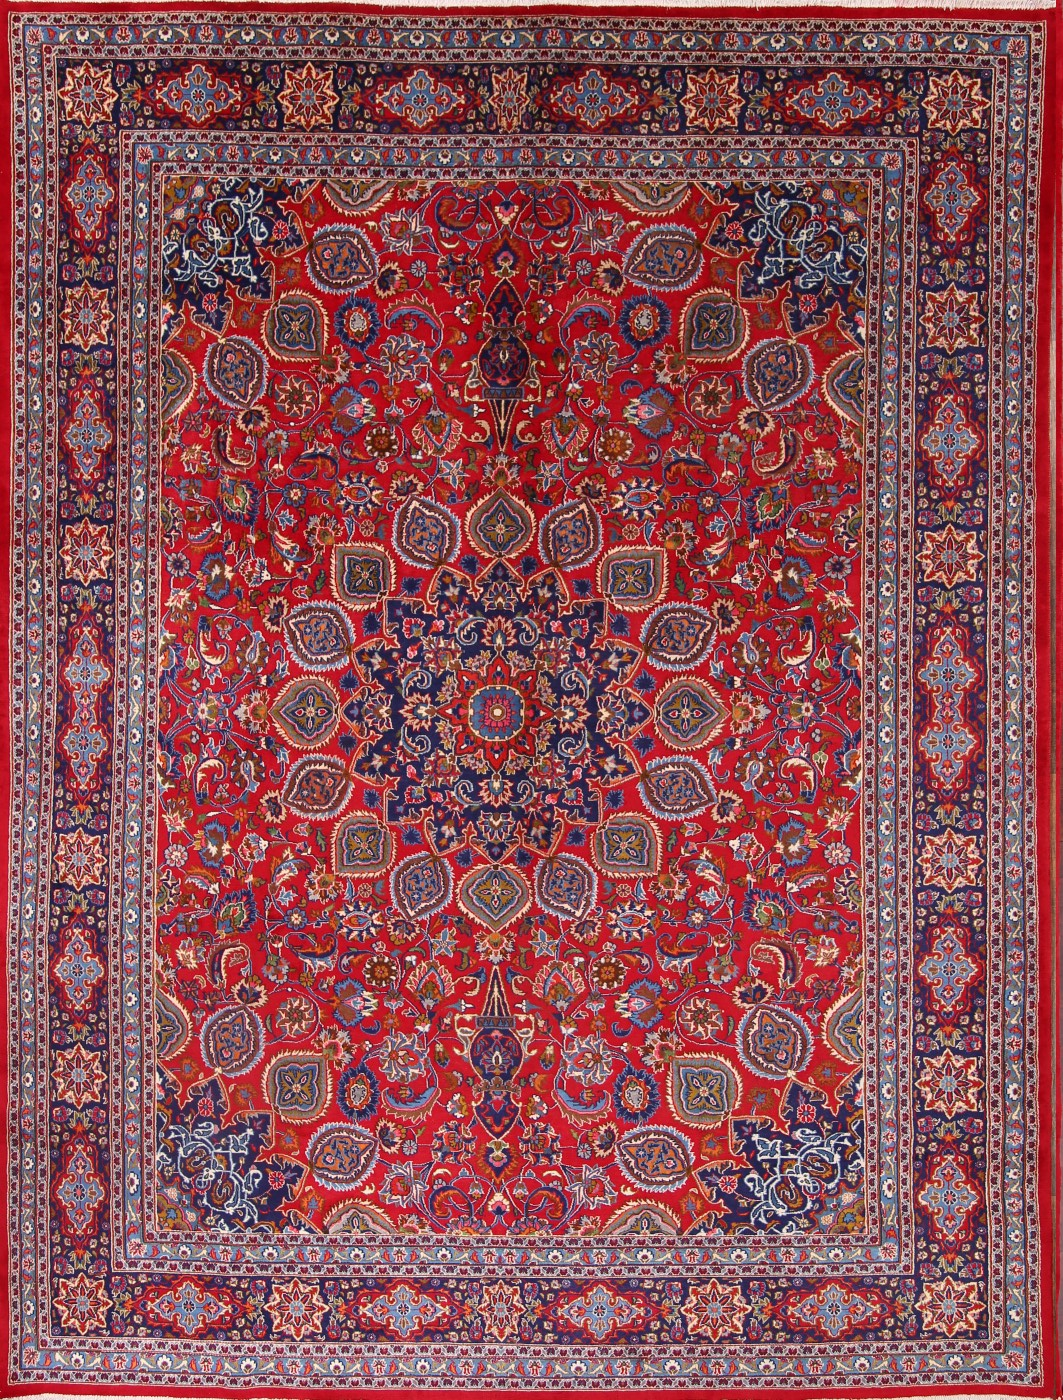 9'9 x 12'10 Hand-knotted Red Persian Mashad Oriental Area Rug 12980466 (1)